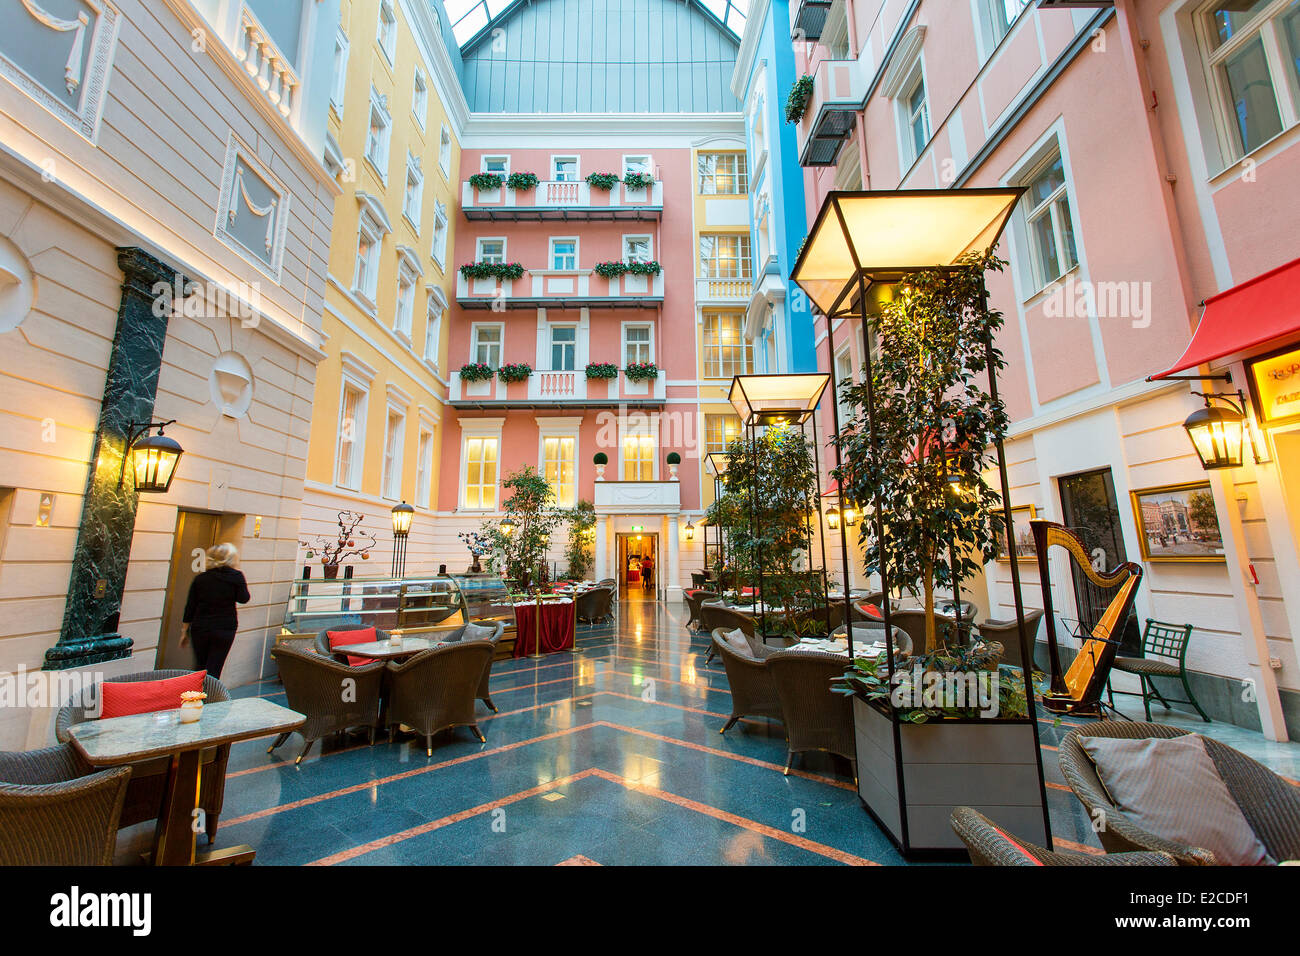 Russia, Saint Petersburg, listed as World Heritage by UNESCO, Grand Hotel Europe - Stock Image